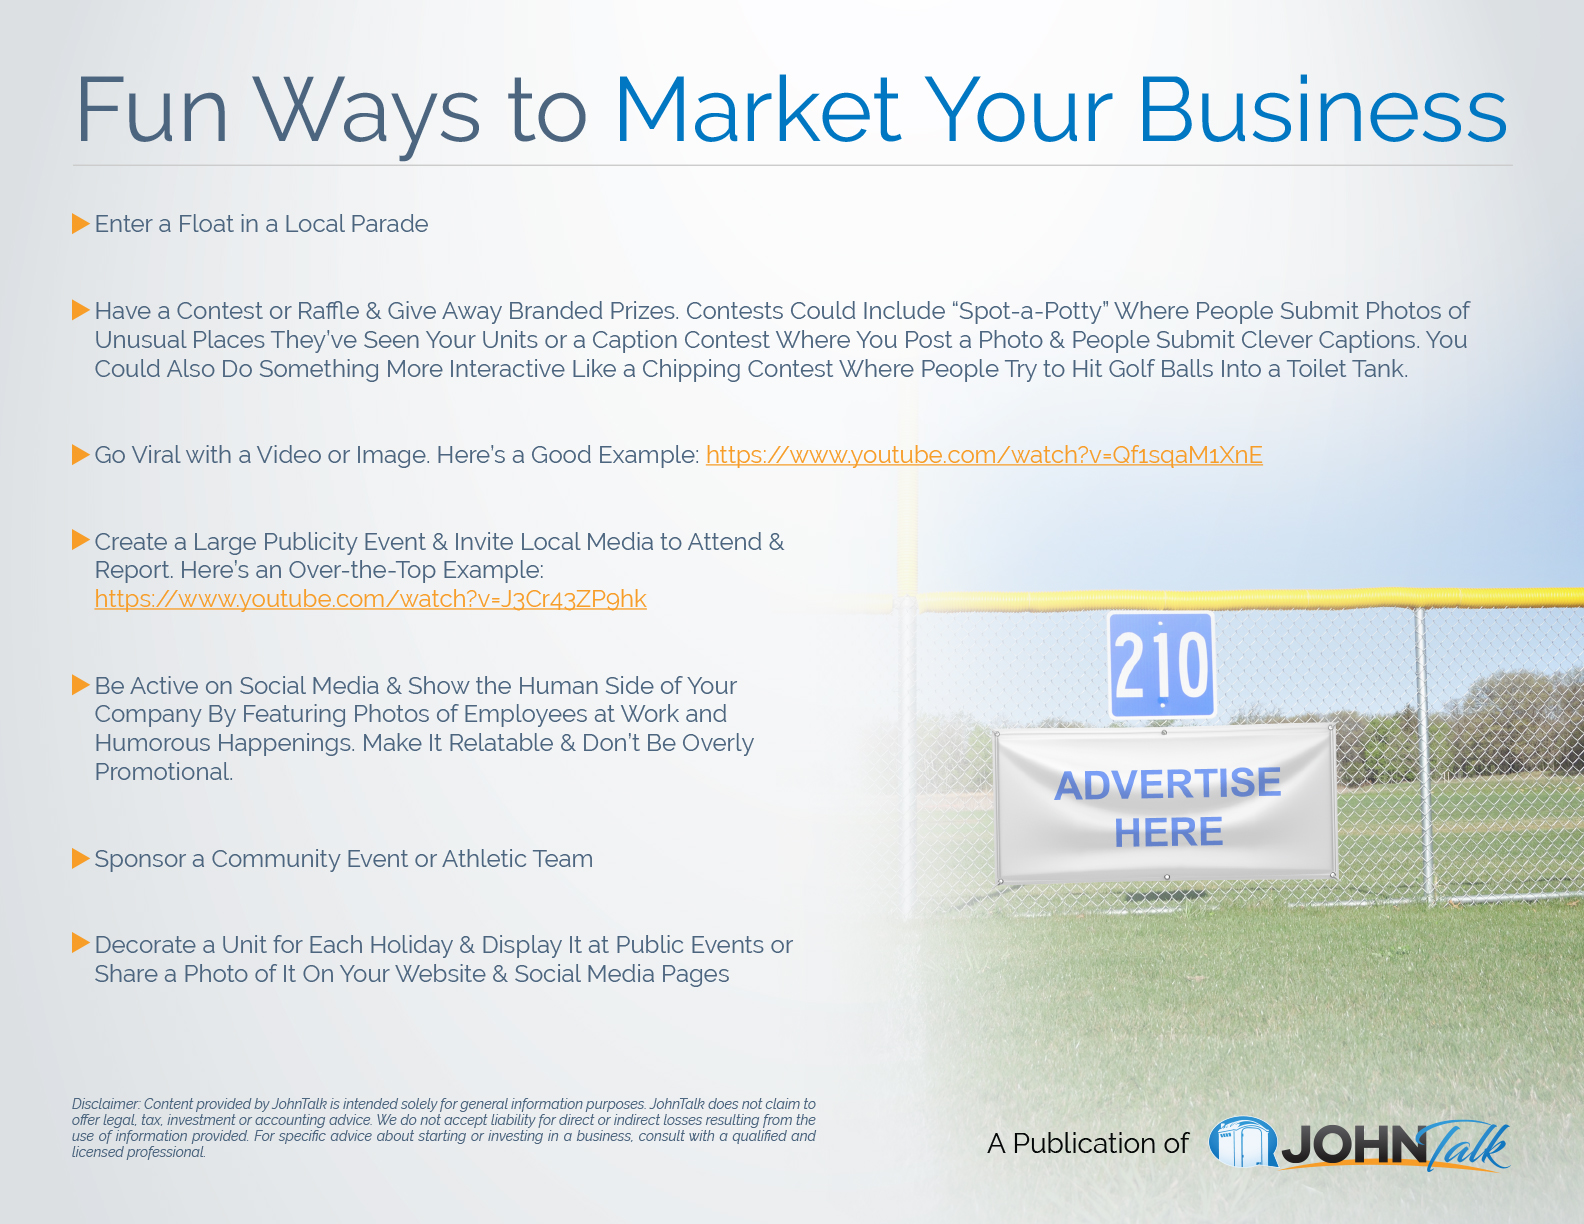 Fun Ways to Market Your Business 2